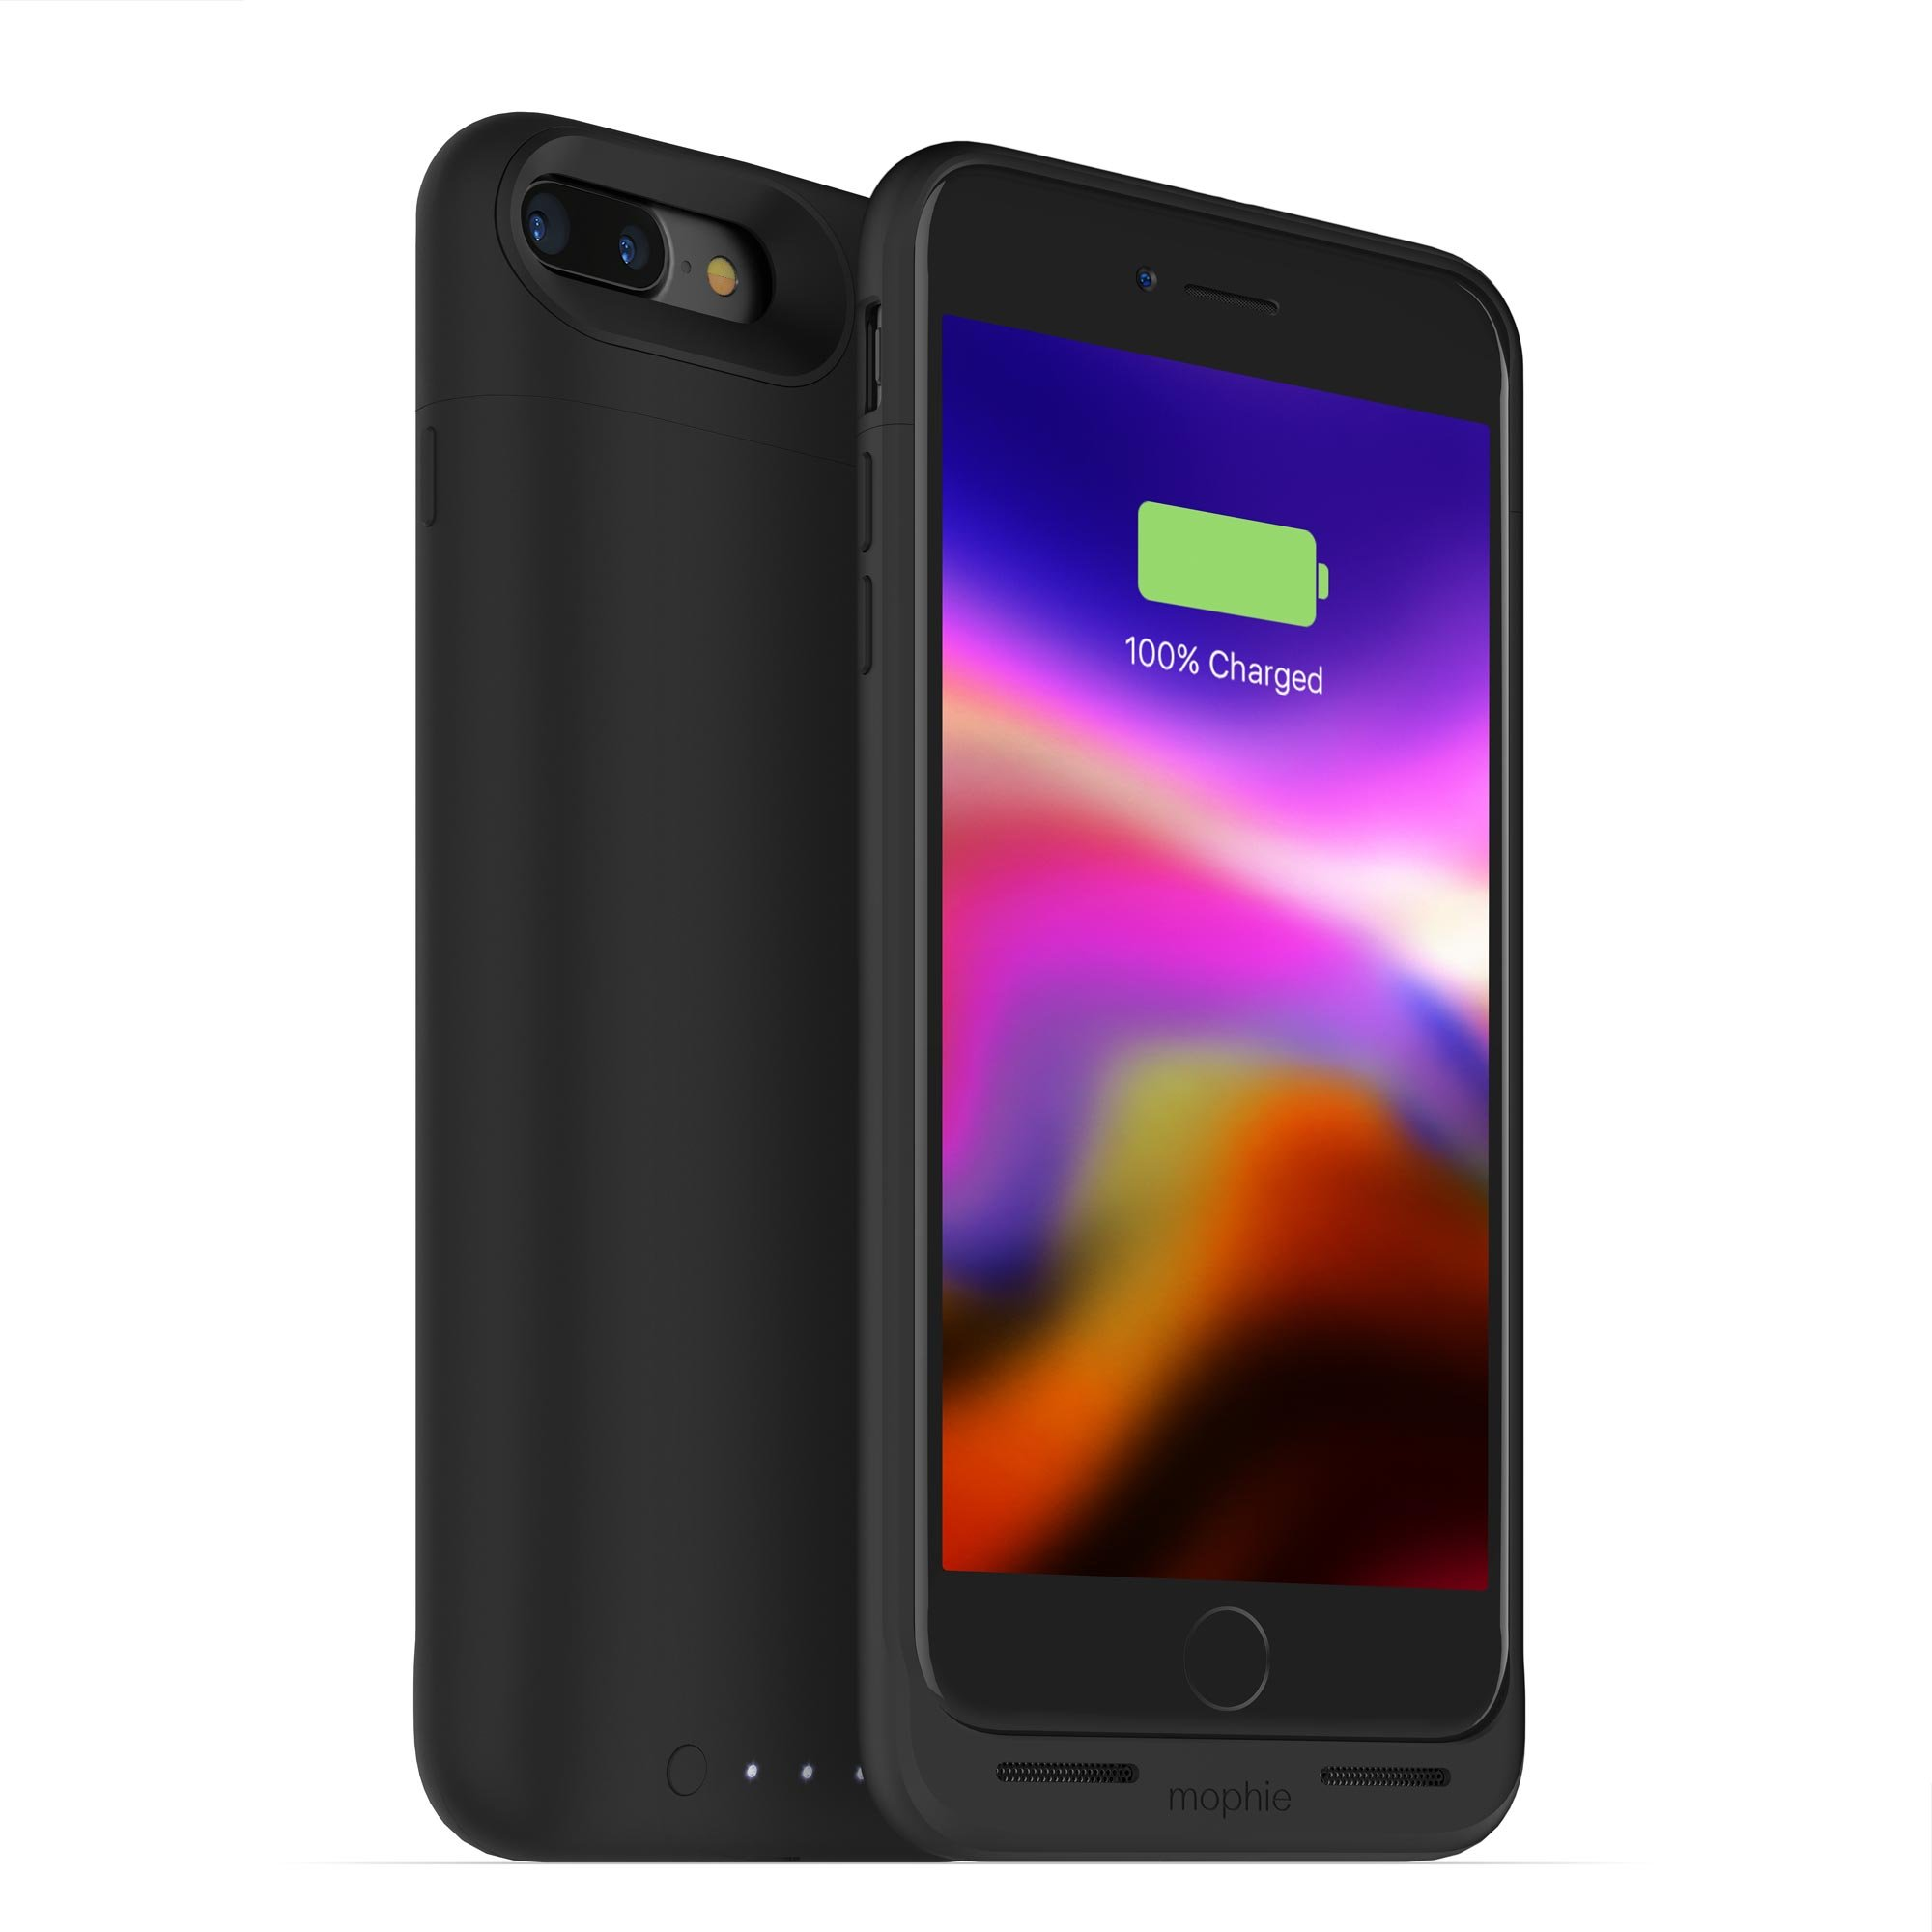 mophie juice pack wireless - Charge Force Wireless Power - Wireless Charging Protective Battery Pack Case for iPhone 8 – Black by mophie (Image #1)